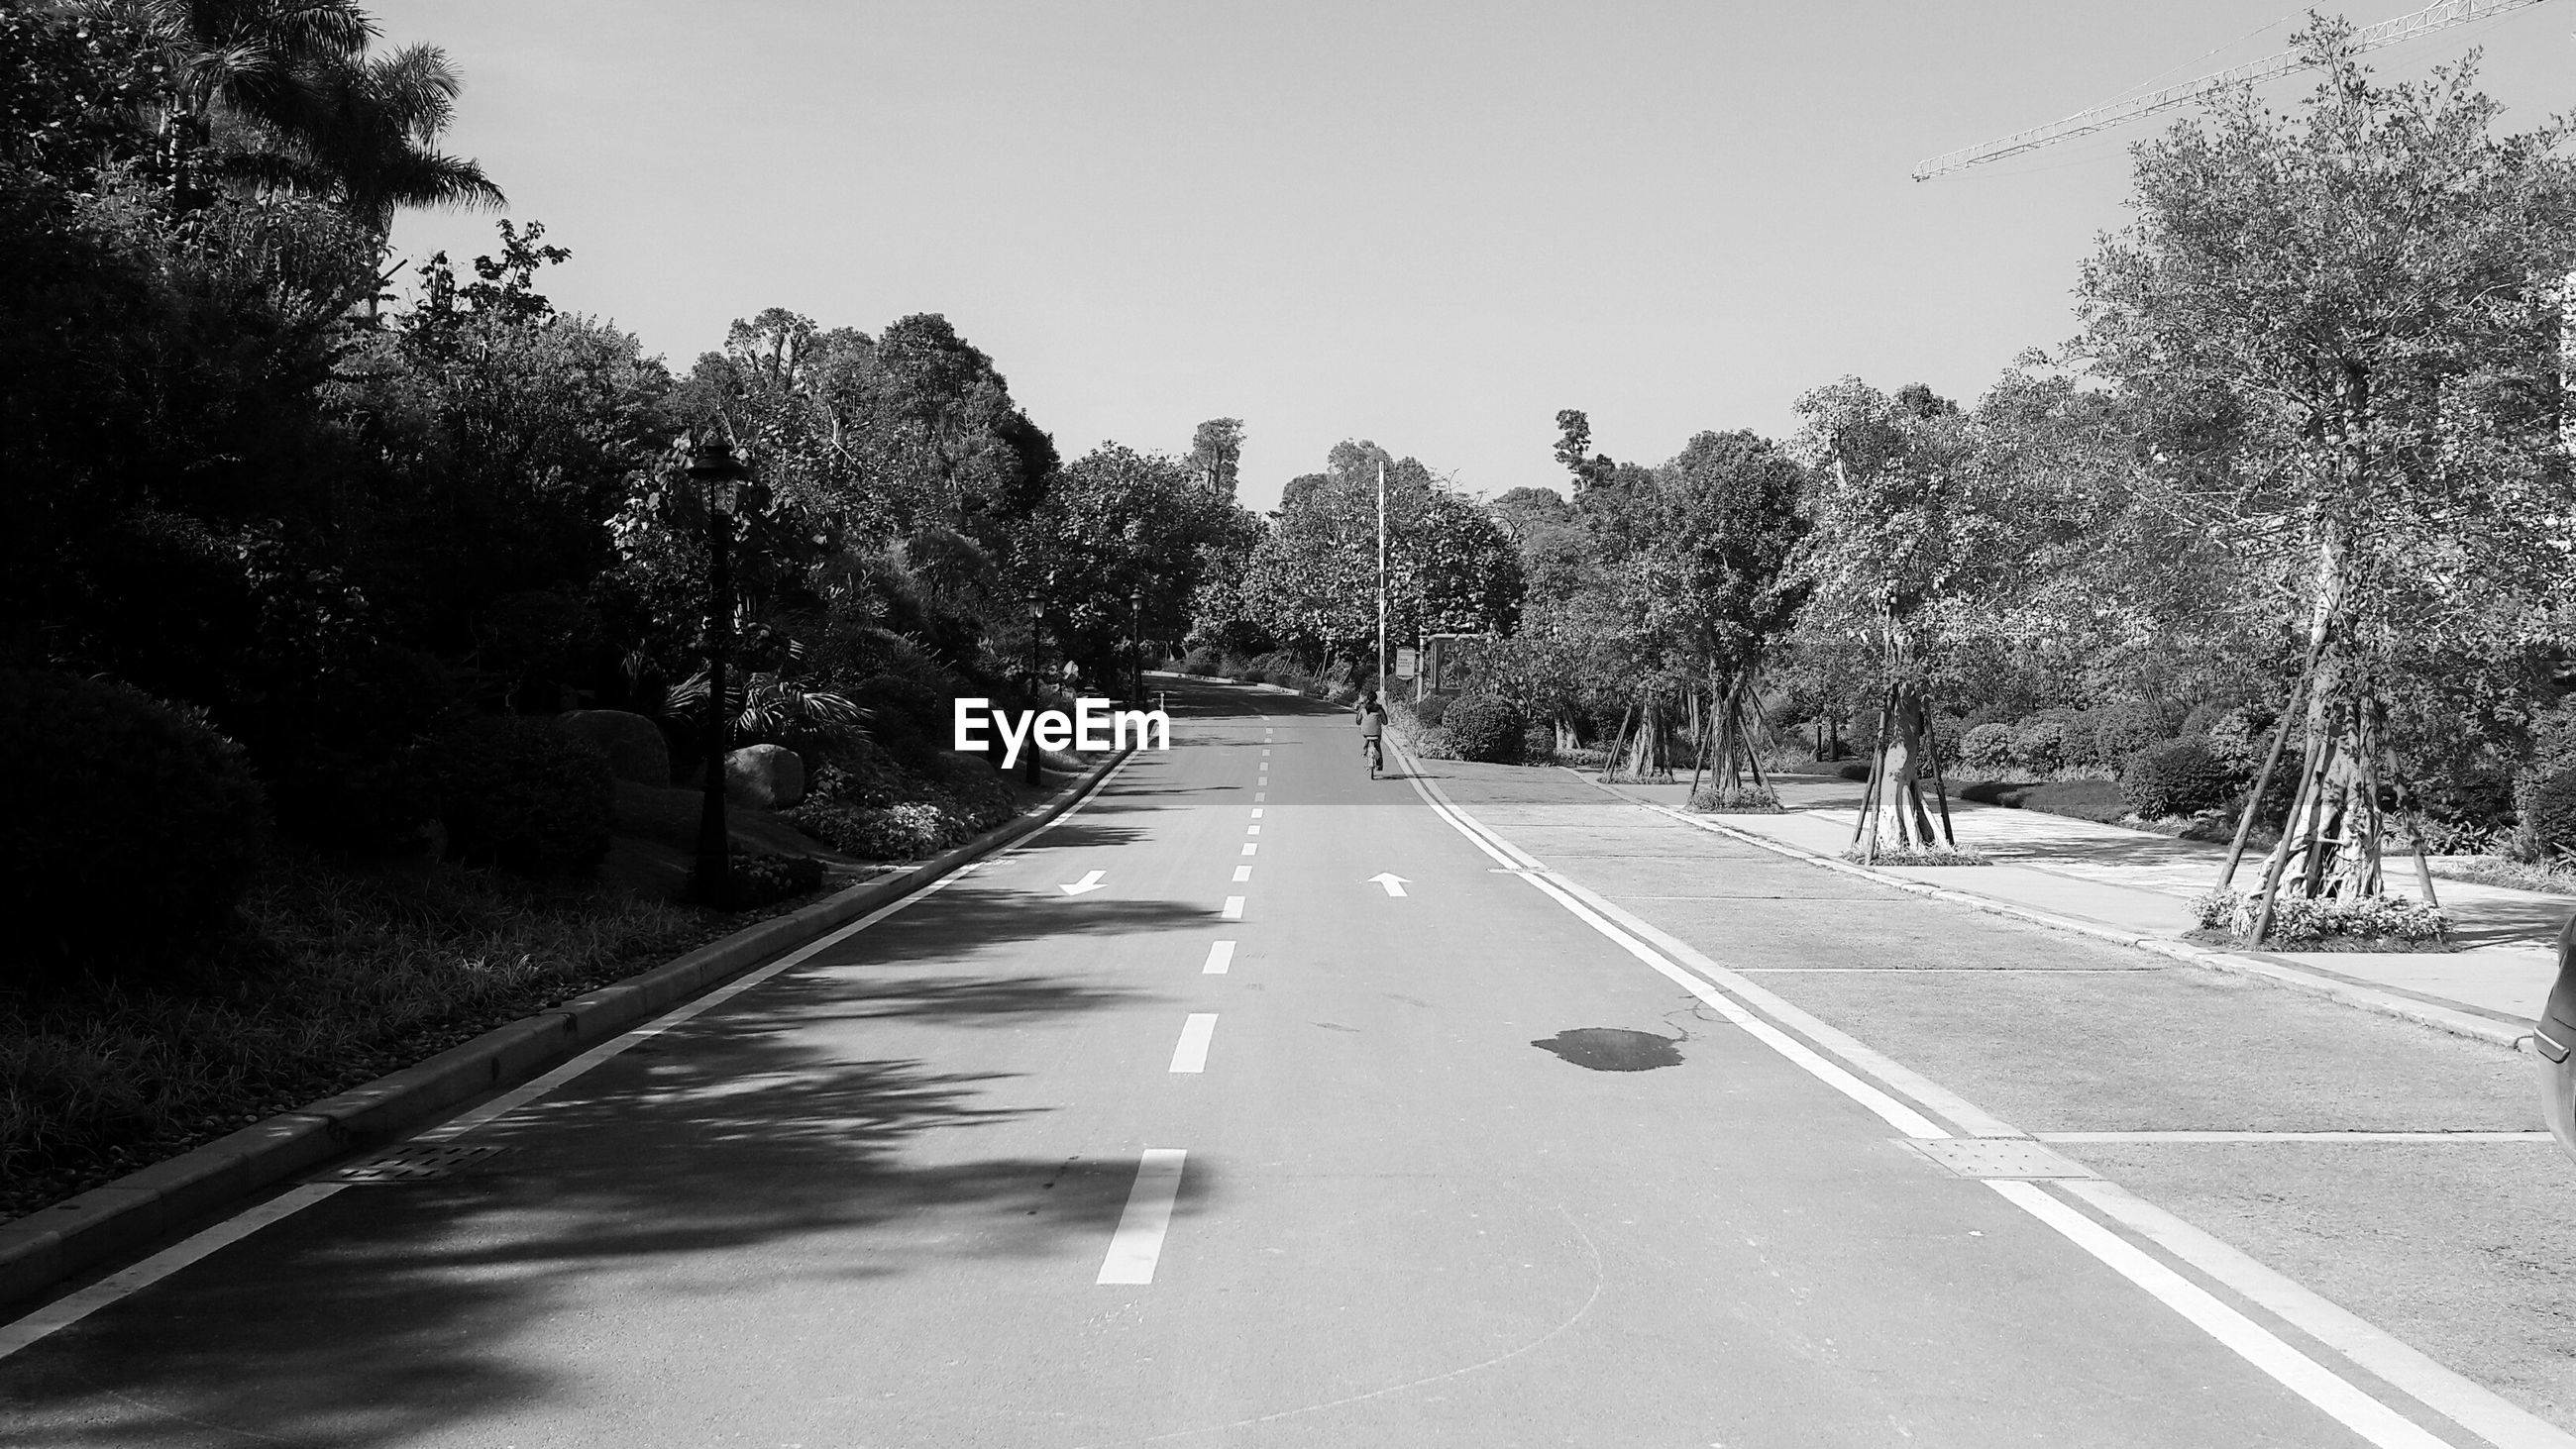 the way forward, transportation, tree, road, diminishing perspective, vanishing point, clear sky, road marking, tranquility, empty, empty road, country road, tranquil scene, asphalt, nature, long, sky, day, street, outdoors